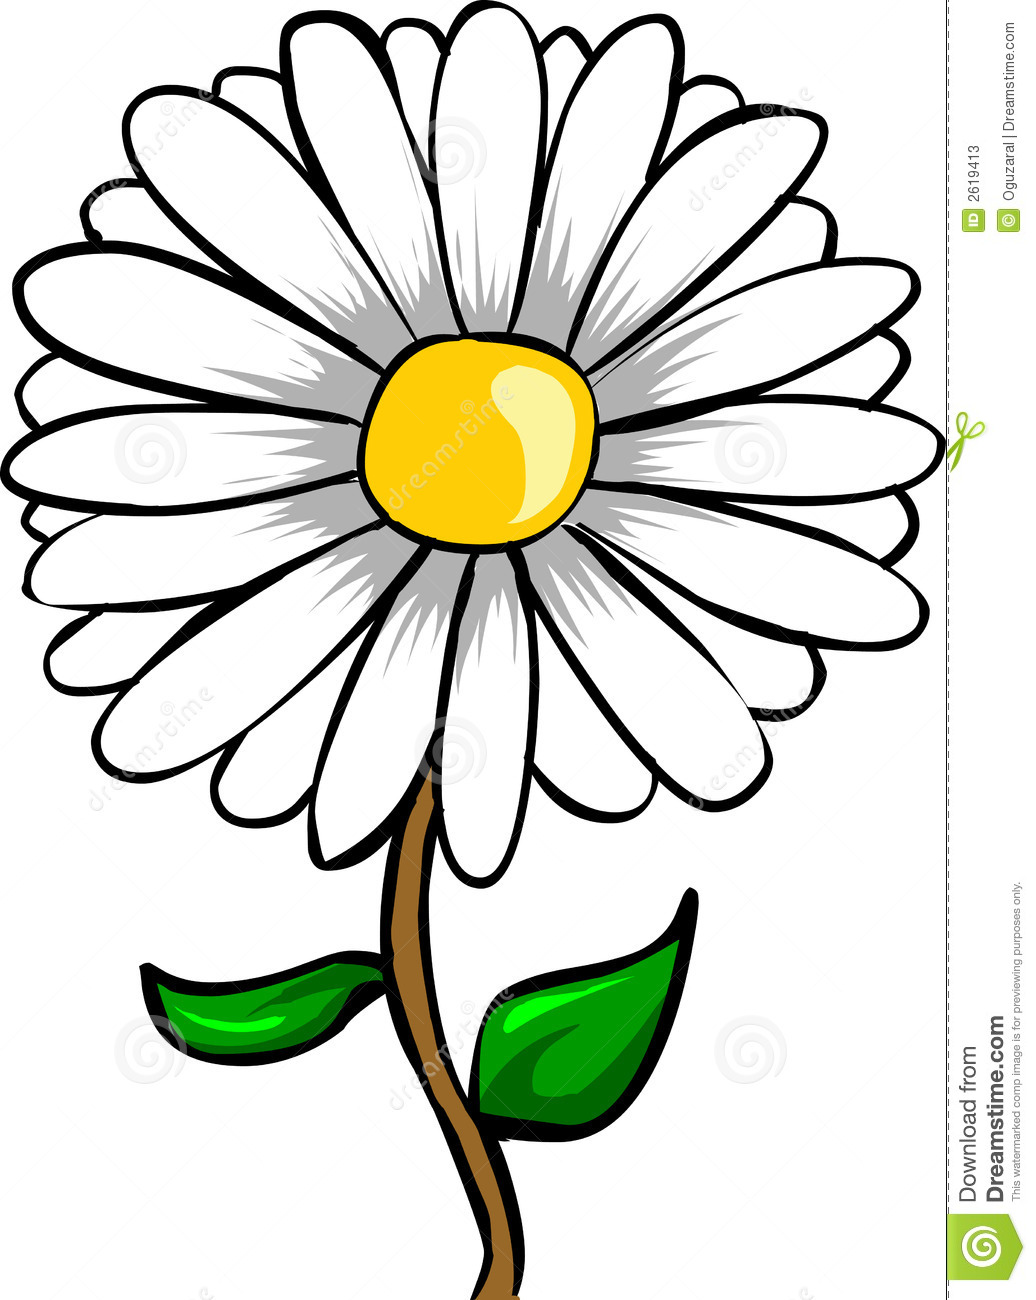 Daisy clipart free download best daisy clipart on clipartmag 1036x1300 top 71 daisy clip art izmirmasajfo Gallery